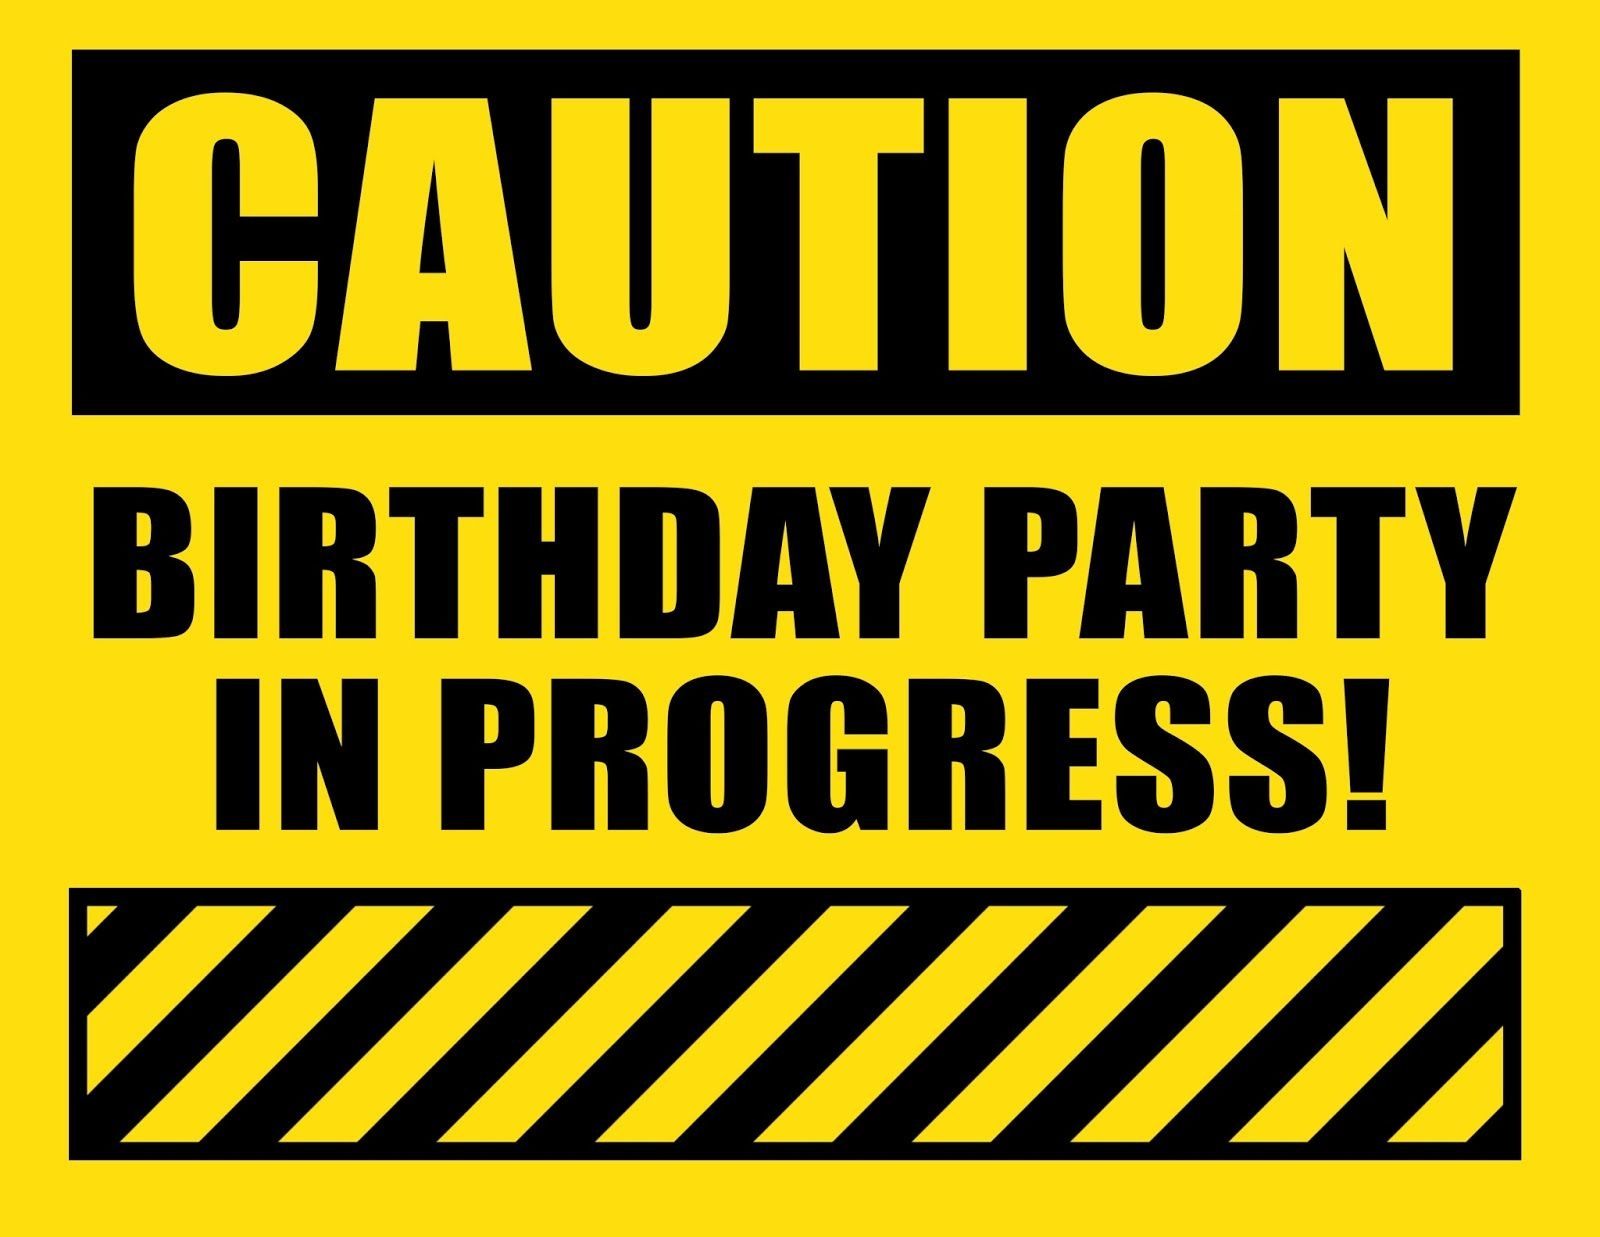 Free Construction Birthday Party Printables. Construction Party - Free Construction Party Printables